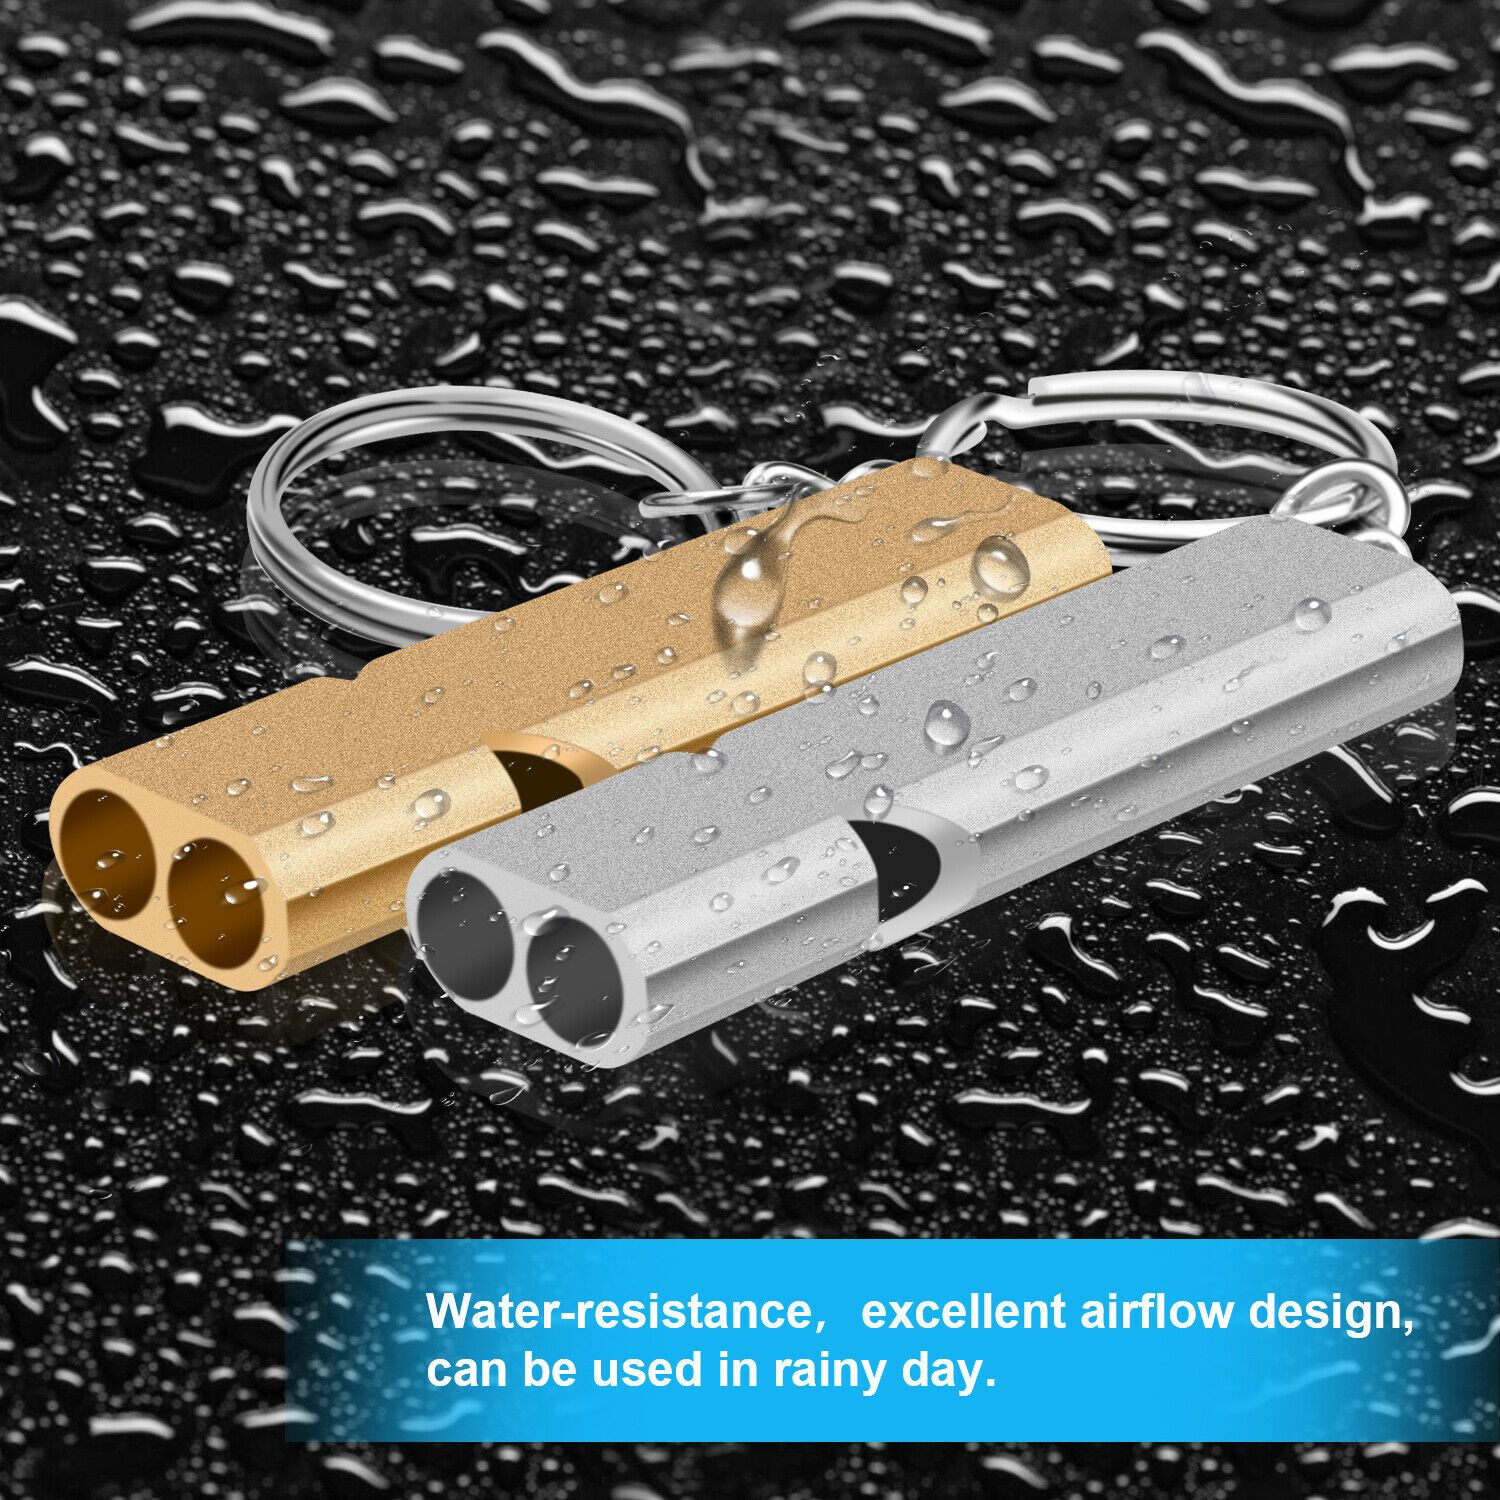 2 Pcs 120db Loud Emergency Survival SOS Whistle Camping Hiking Keychain Outdoor Camping & Hiking